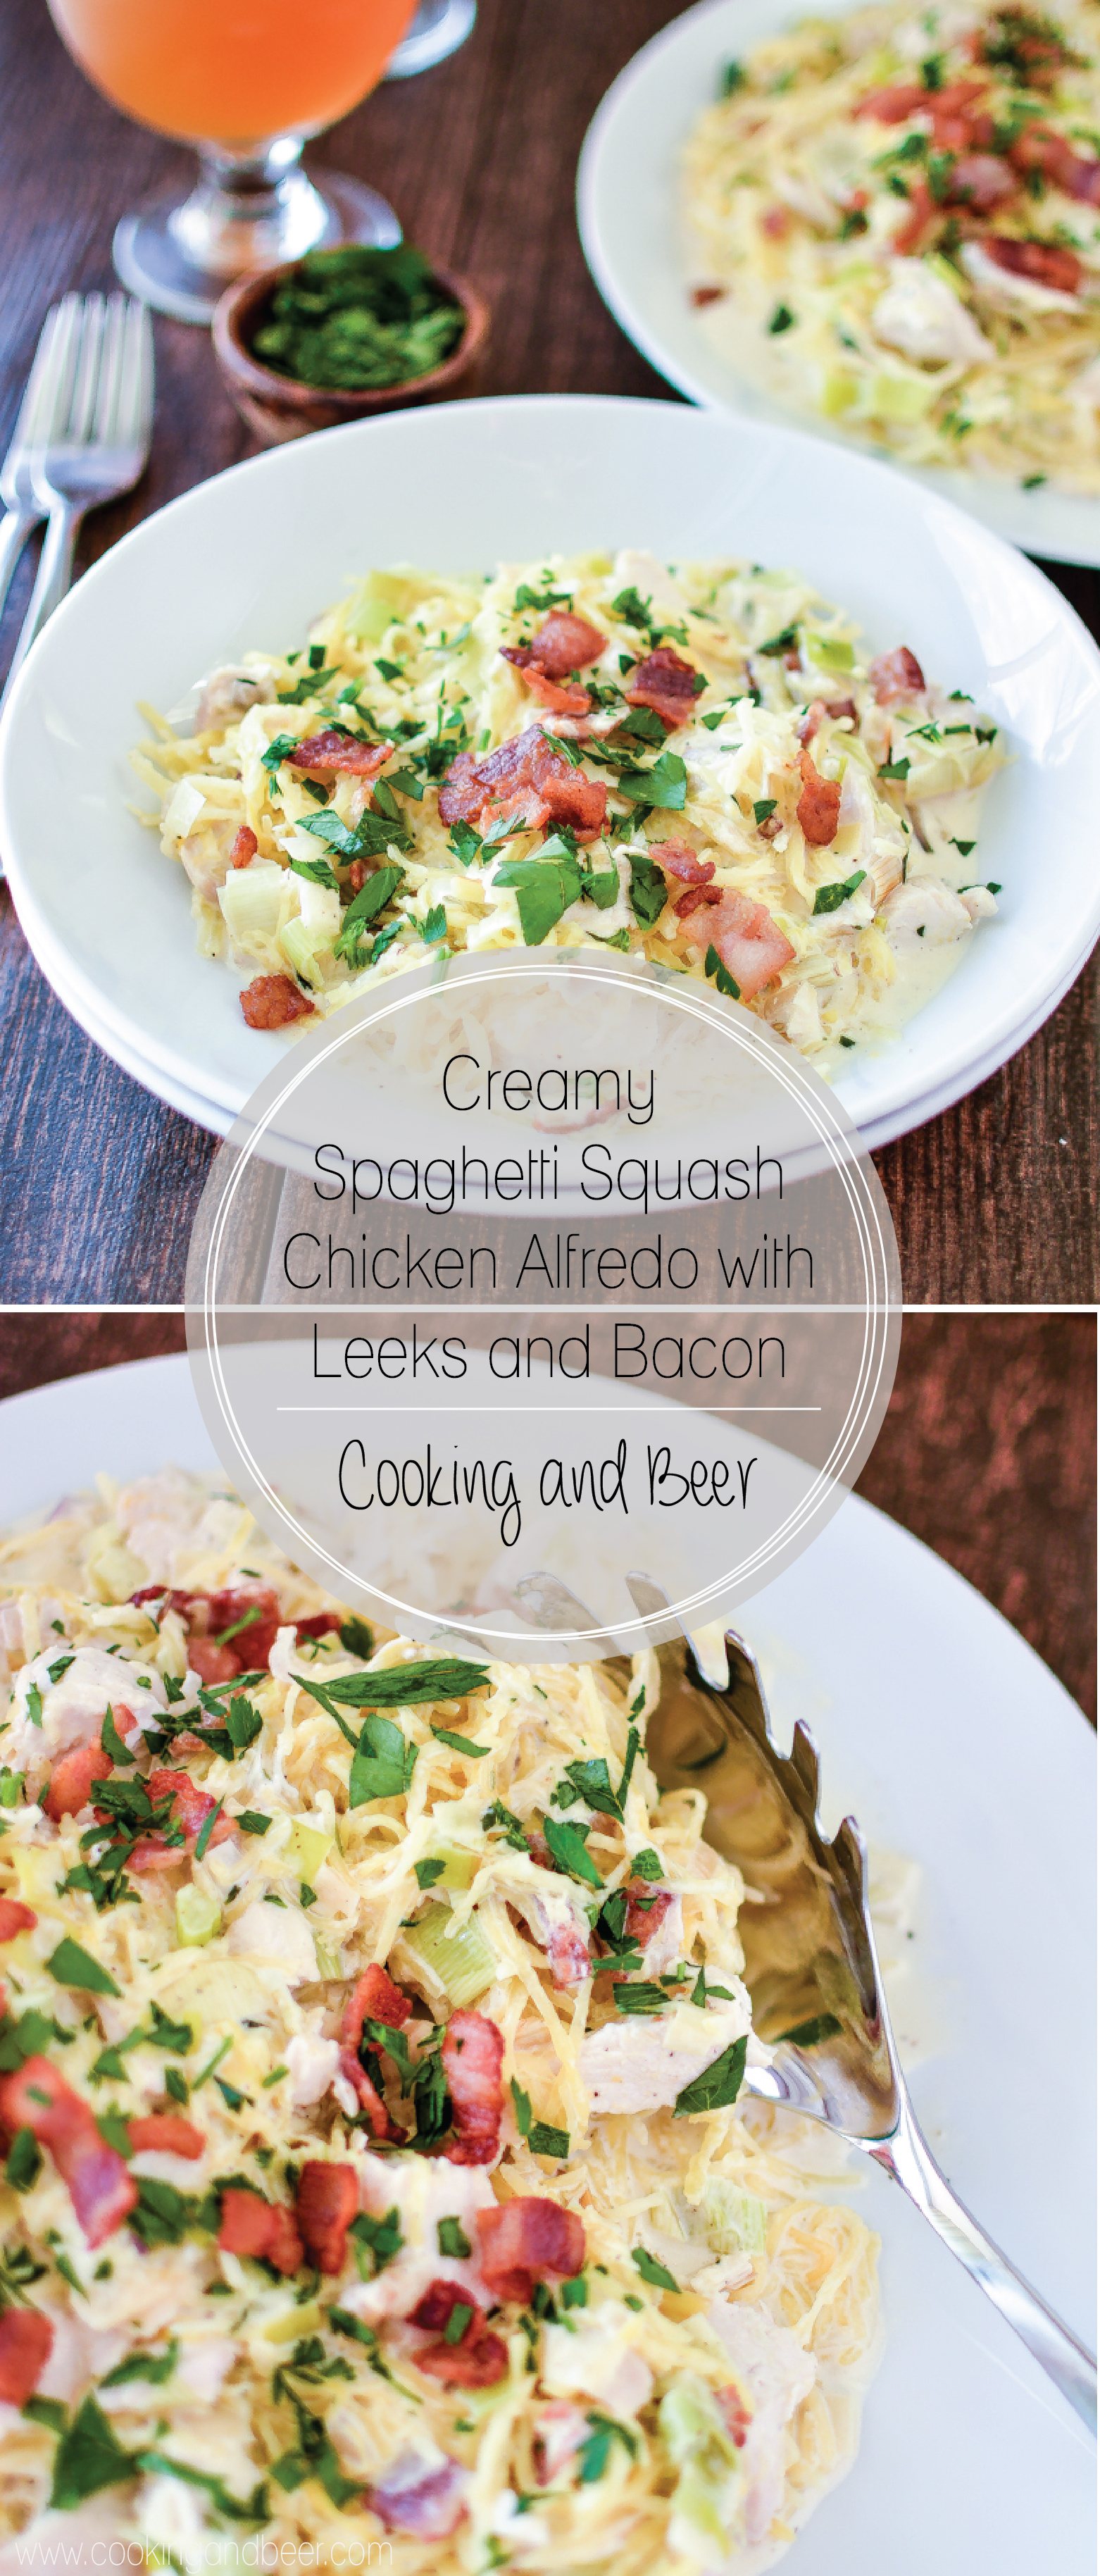 Creamy Spaghetti Squash Chicken Alfredo with Leeks and Bacon: a fun twist on a classic dinner recipe.